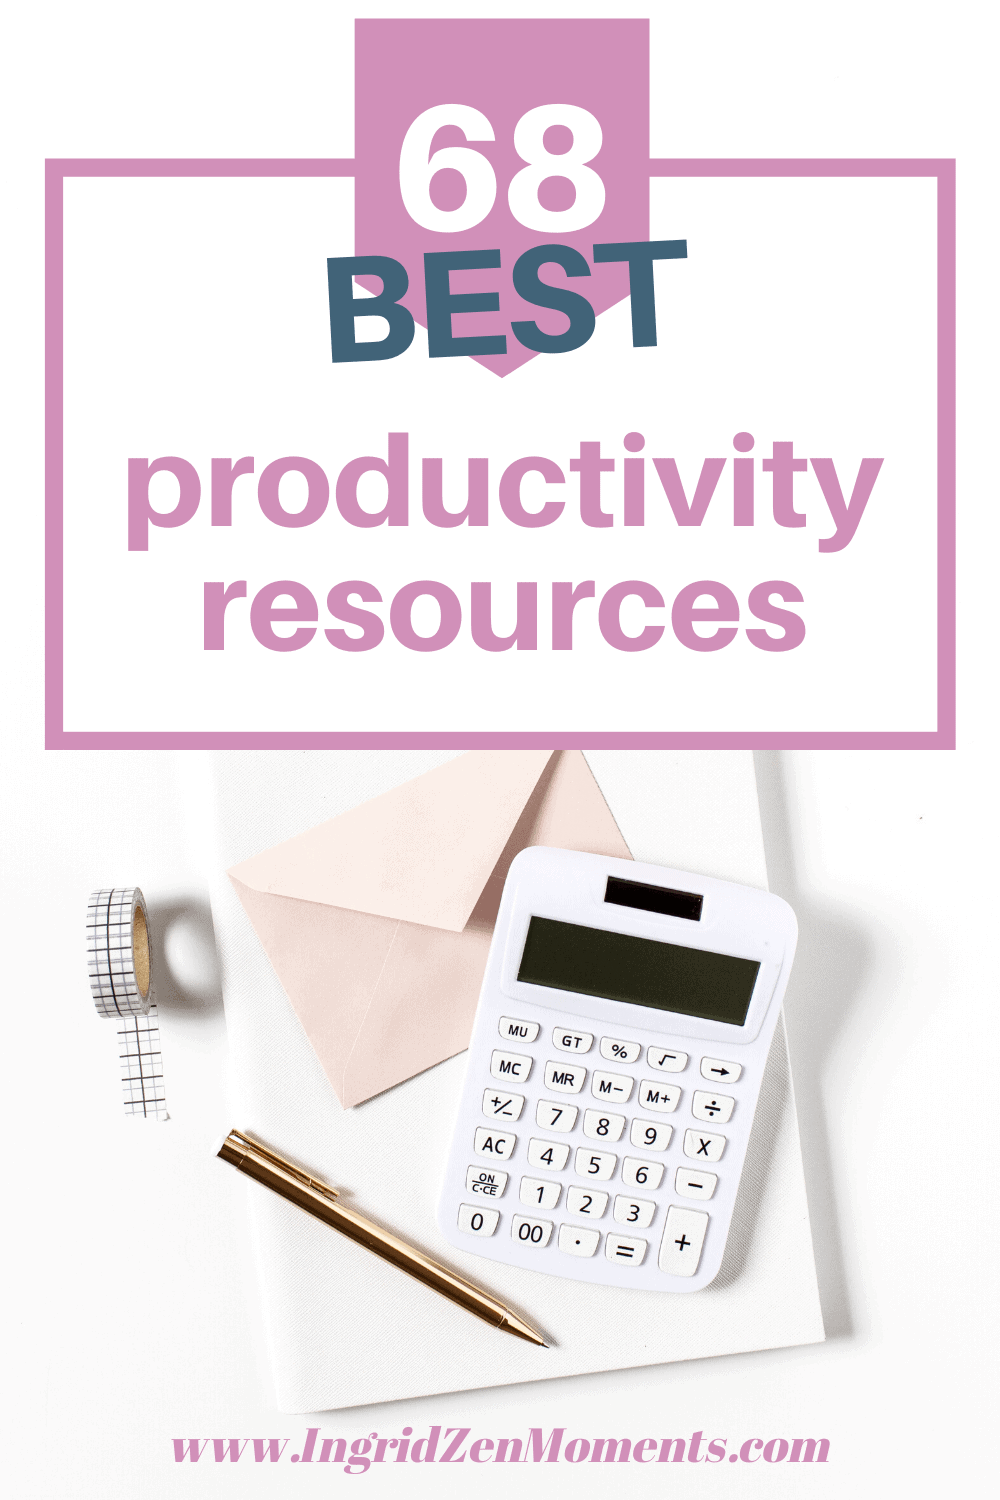 Productivity tips and an honest review of the Ultimate Productivity Bundle. Learn business productivity ideas, reach your goals and make the best out of 2020. Find your answers all the things to do productive. Tips on how to be more organized.